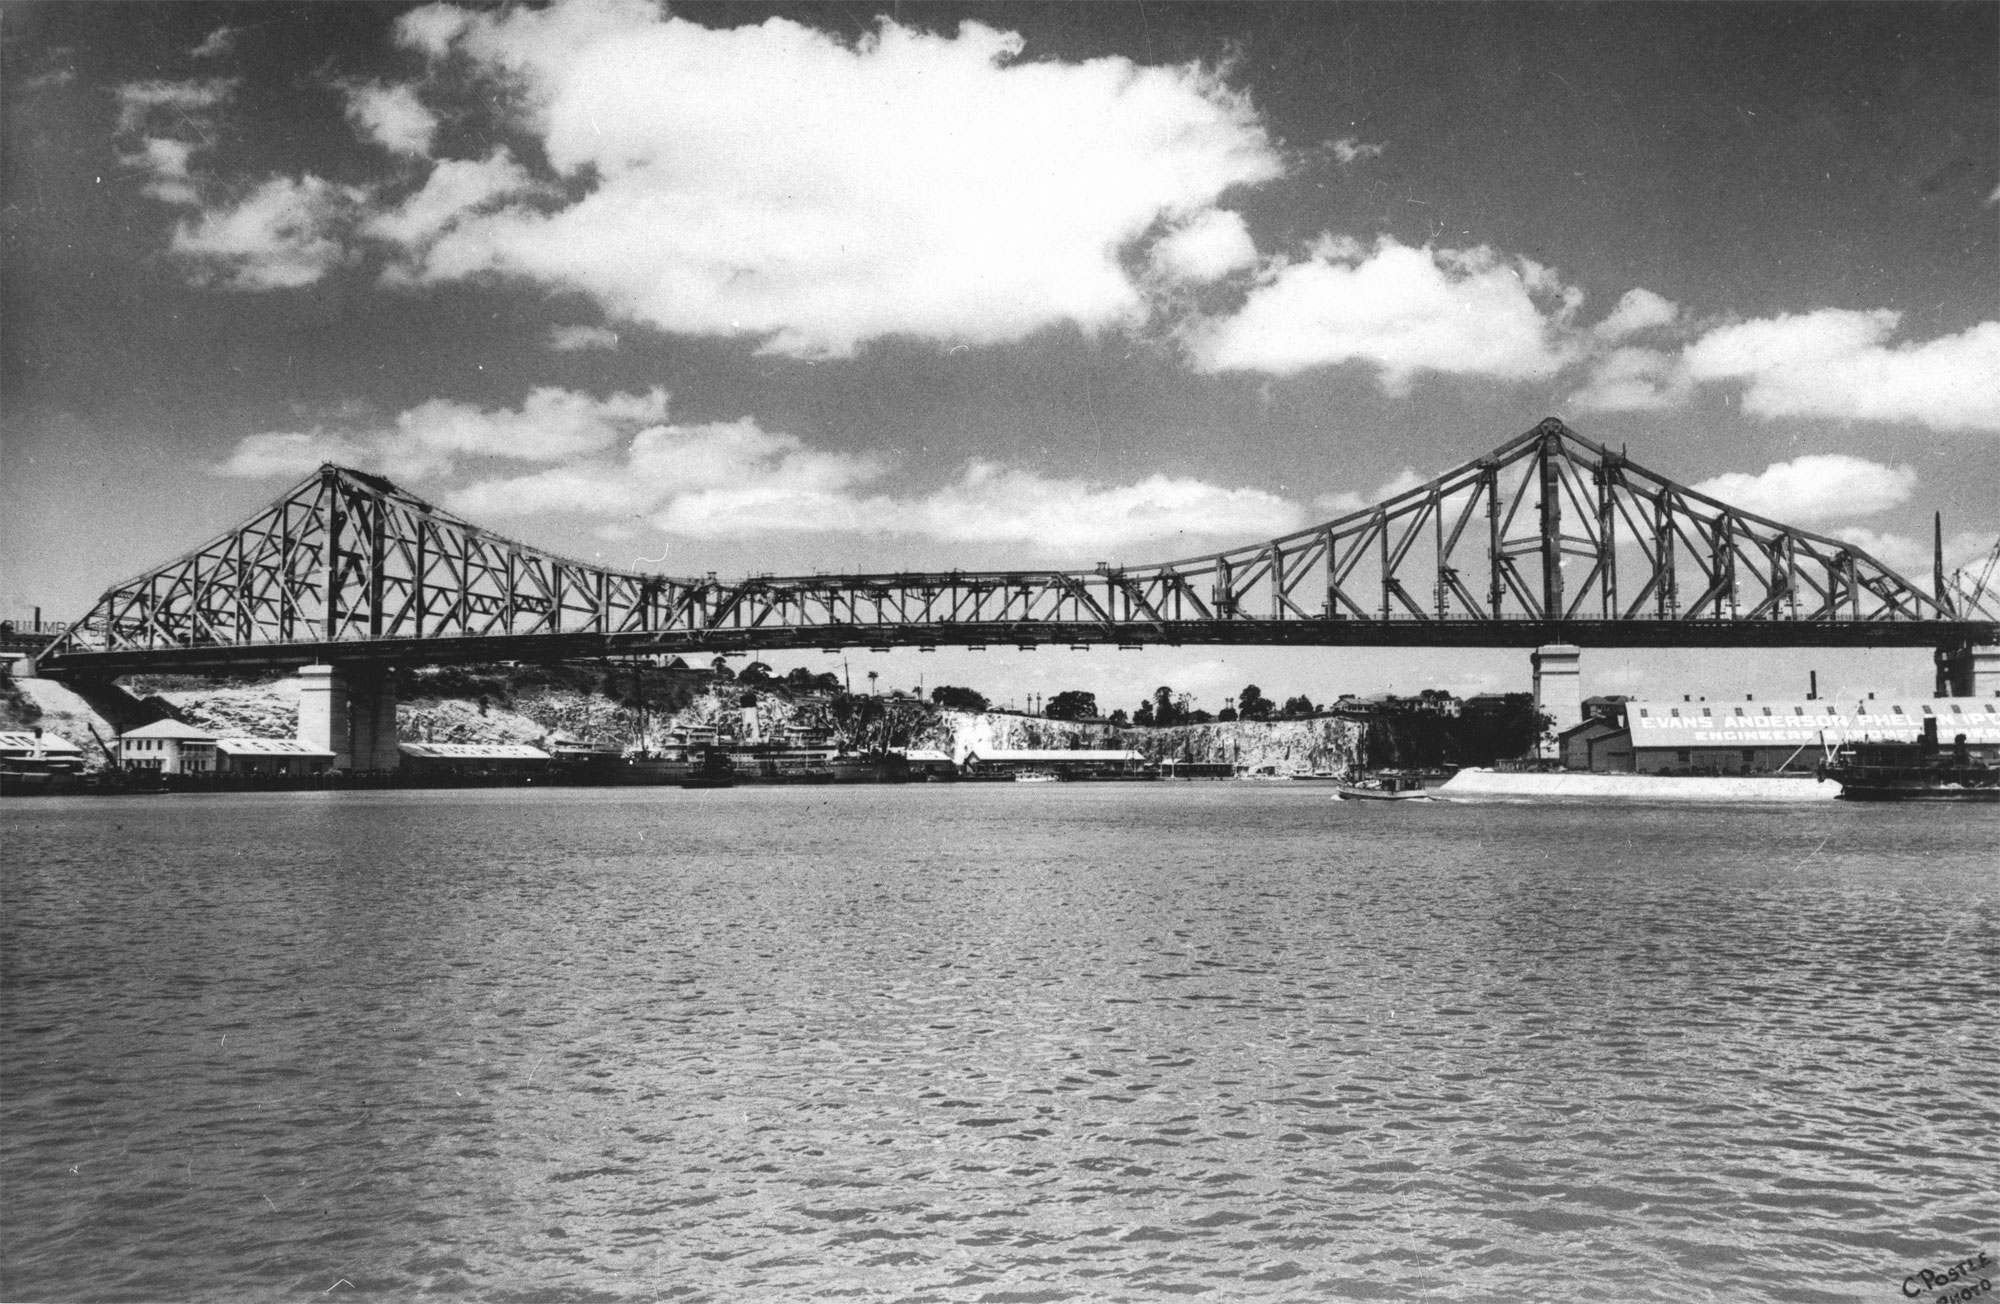 Brisbanes Story Bridge 1940 The 281 metre cantilever bridge was built between19351940 constructed by Evans Deakin - Hornibrook Pty Ltd The premises of Evans Anderson Phelan Pty Ltd Engineers at Kangaroo Point are visible on the right The New Farm cliffs can be seen in the background The bridge connected Fortitude Valley and the southside suburbs It is heritage listed and now carries 30 million cars per year 16 bridges cross the river but the Story Bridge remains the grandfather of them all